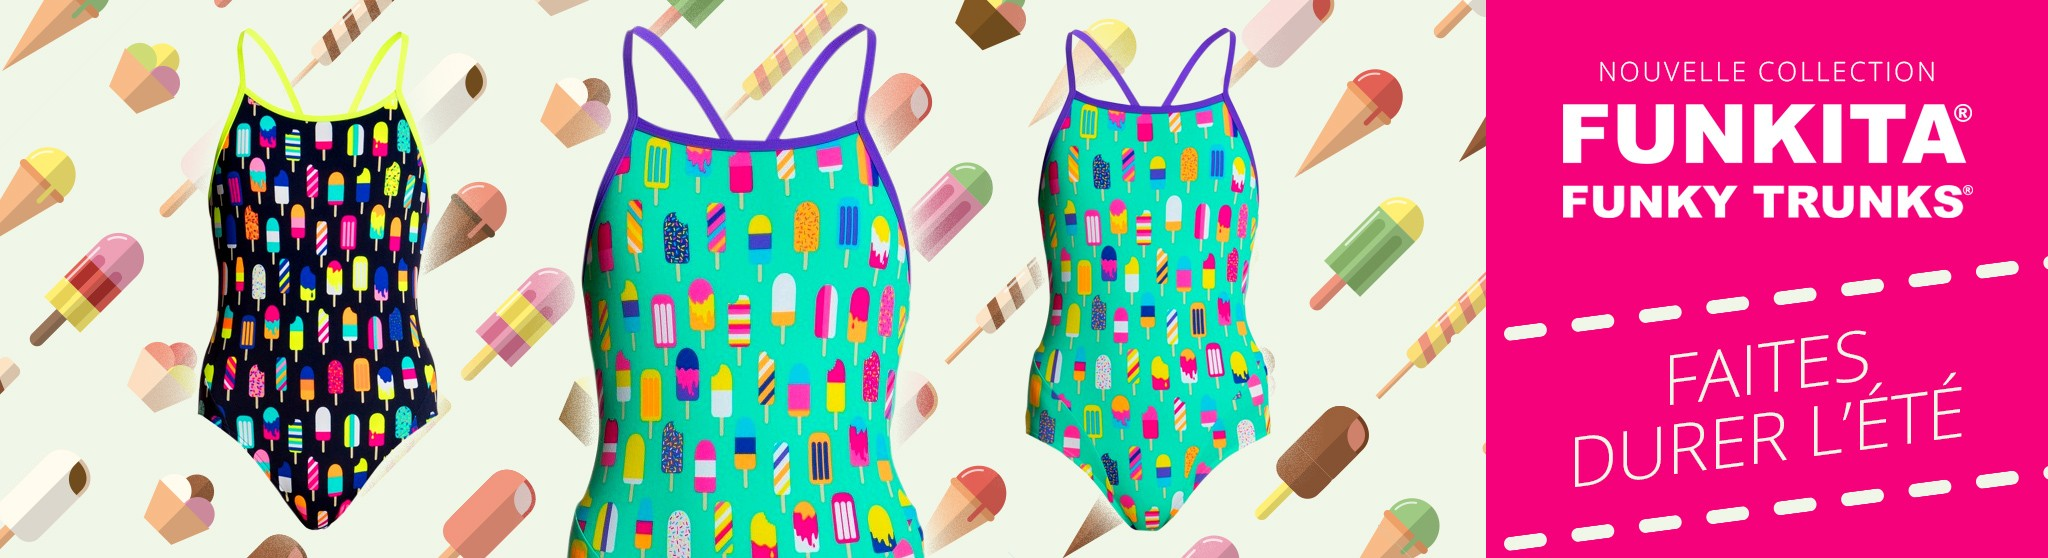 Nouvelle Collection funky trunks funkita WILD WATER